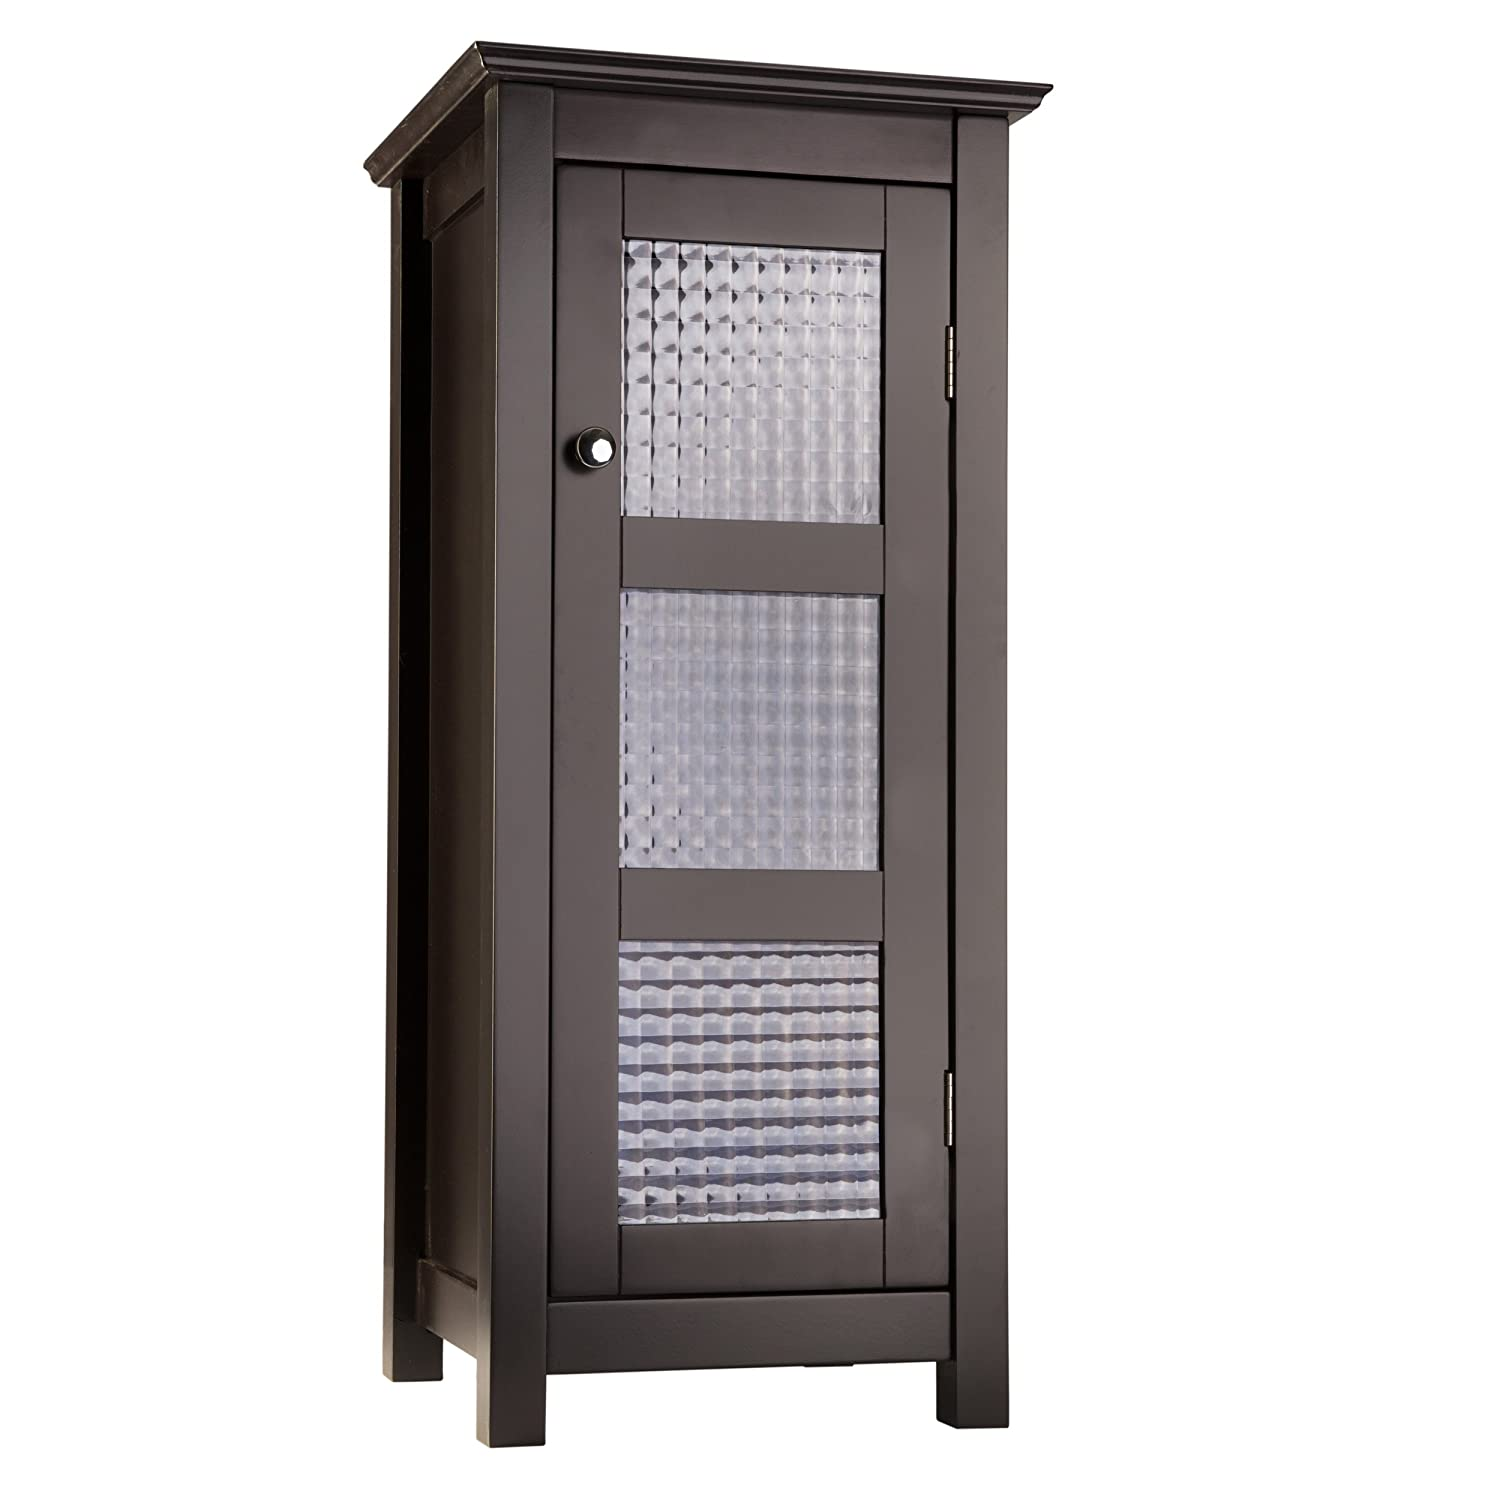 Amazon.com: Elegant Home Fashions Chesterfield Collection Shelved Floor  Cabinet With Glass Paneled Door, Espresso: Kitchen U0026 Dining